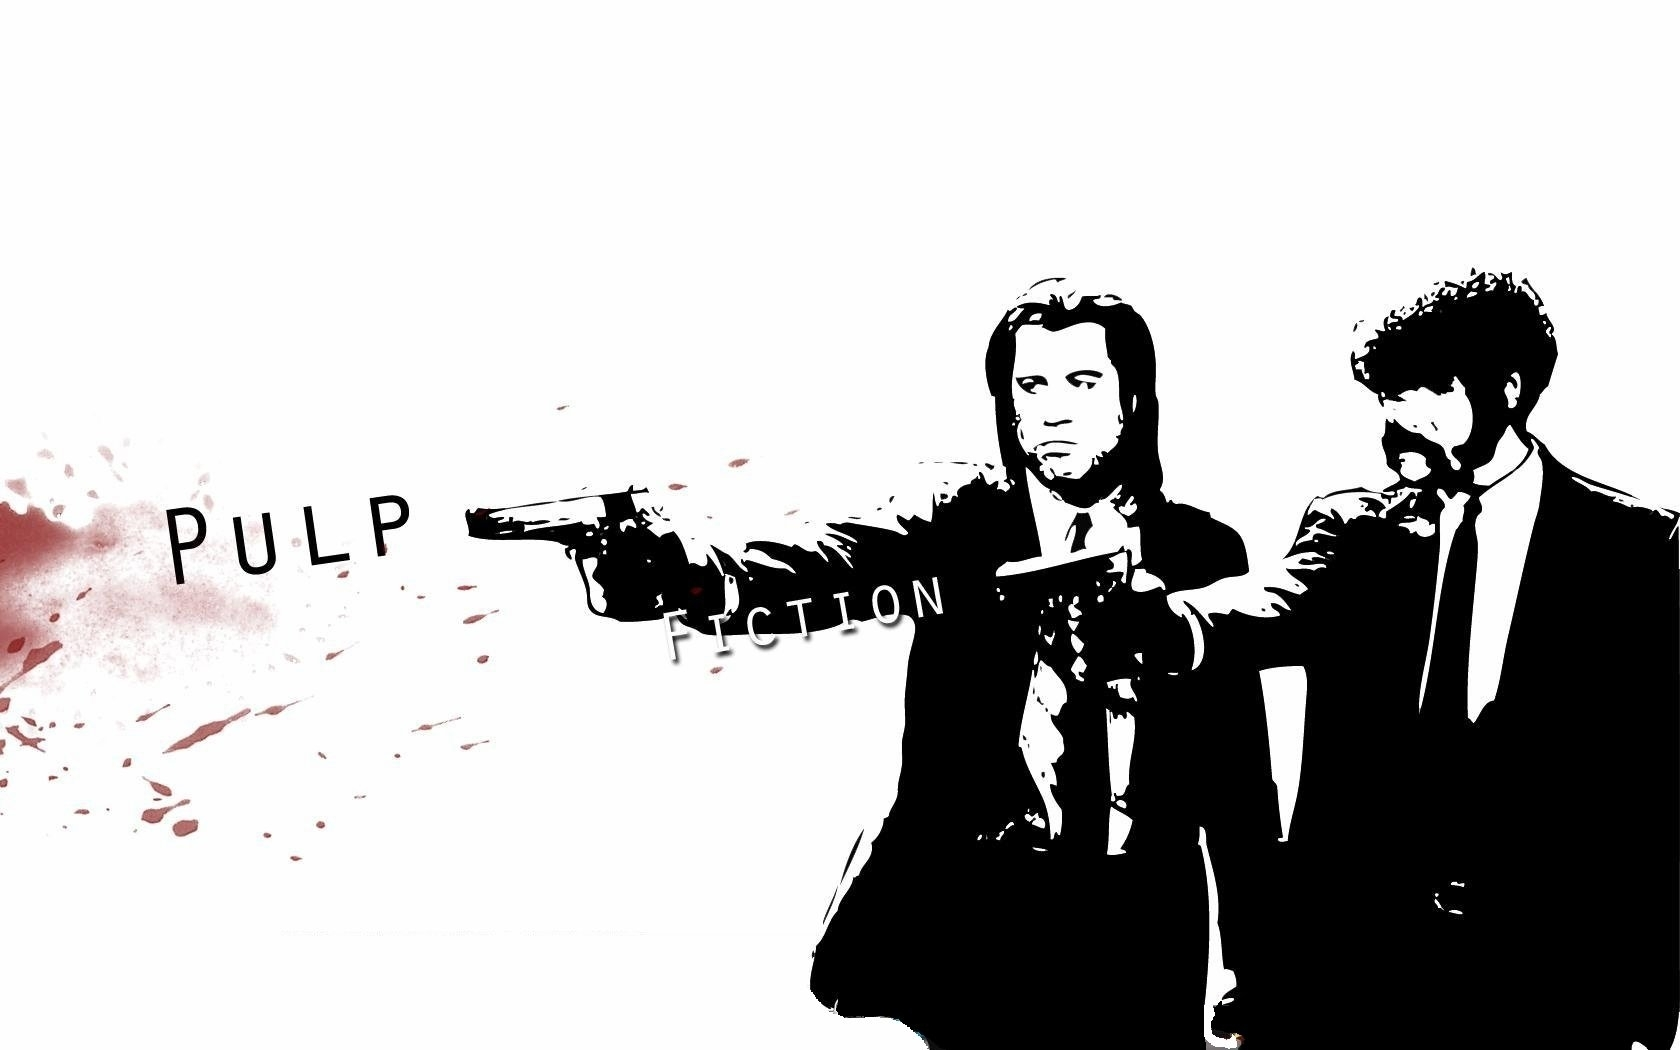 56 pulp fiction hd wallpapers | background images - wallpaper abyss